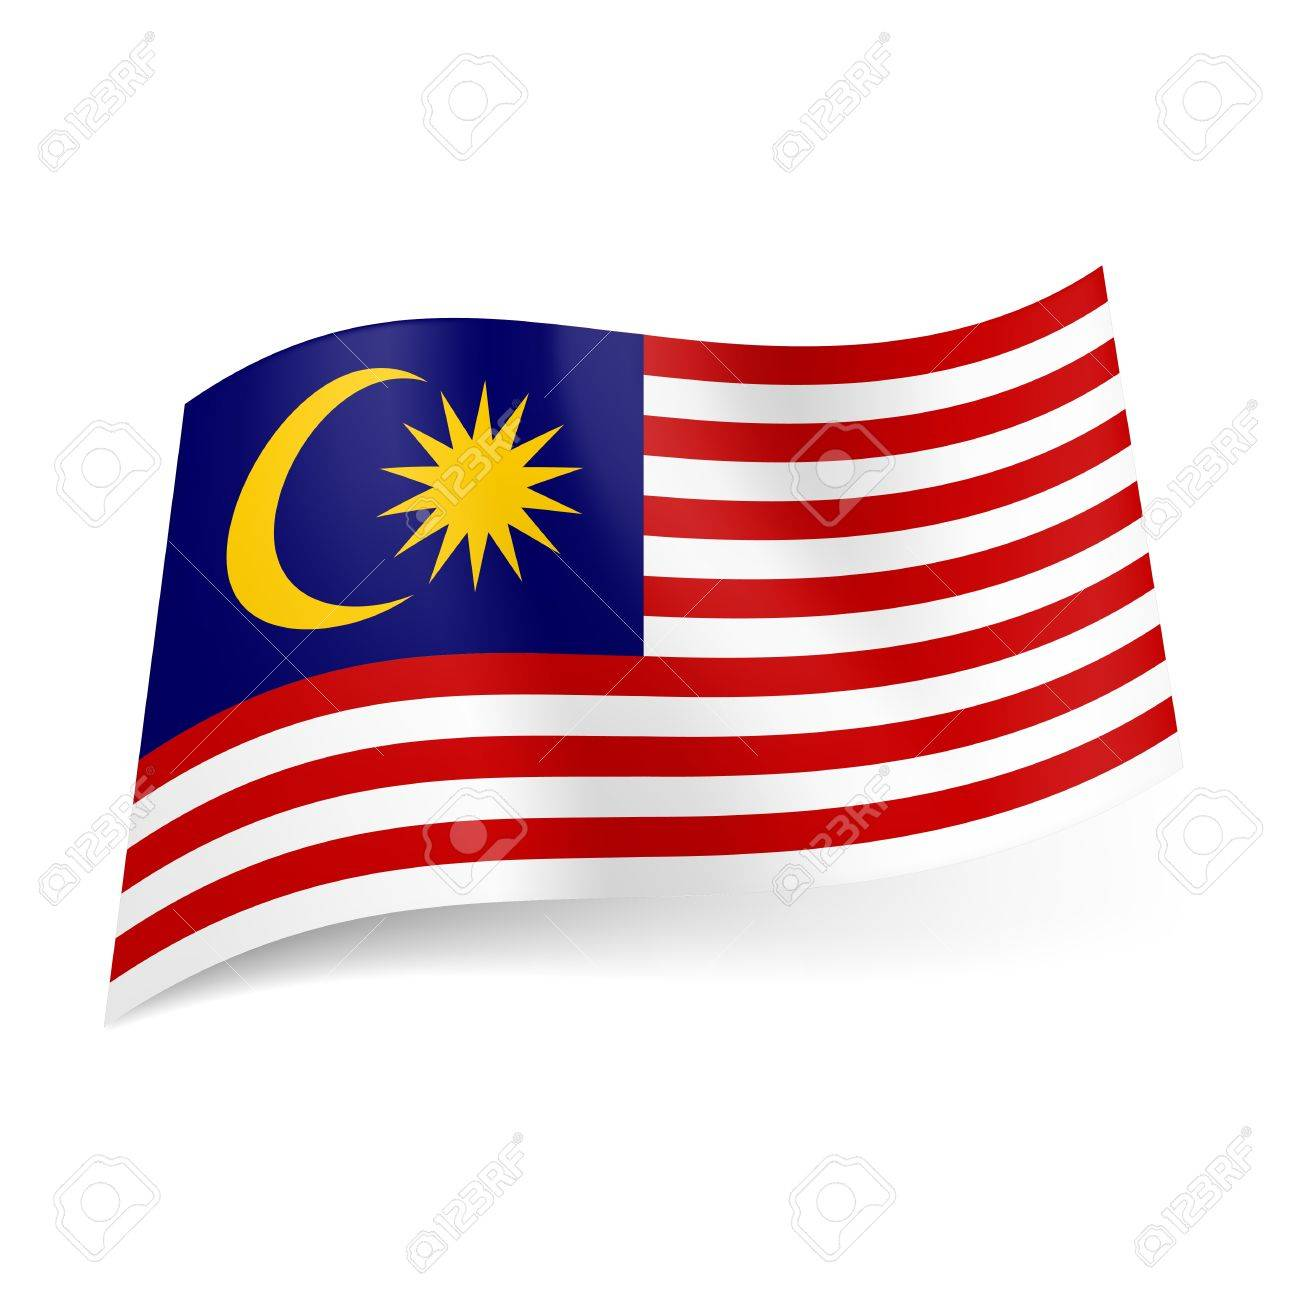 National Flag Of Malaysia Red And White Horizontal Stripes With